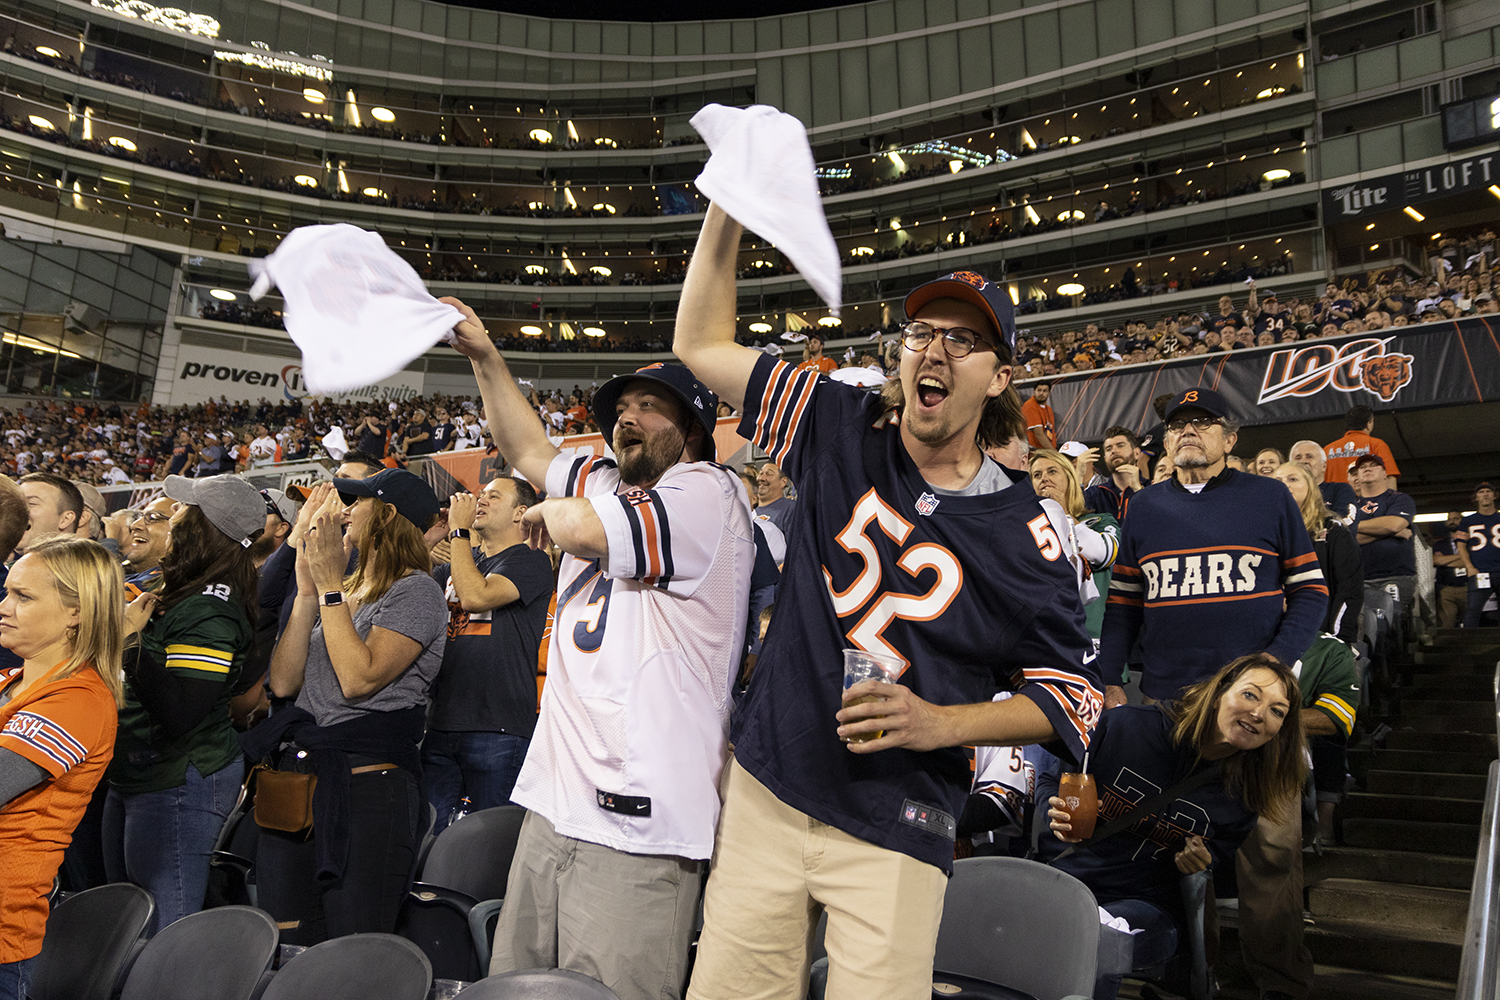 Fans+cheer+on+the+Bears+as+they+take+on+the+Green+Bay+Packers+Sept.+5.